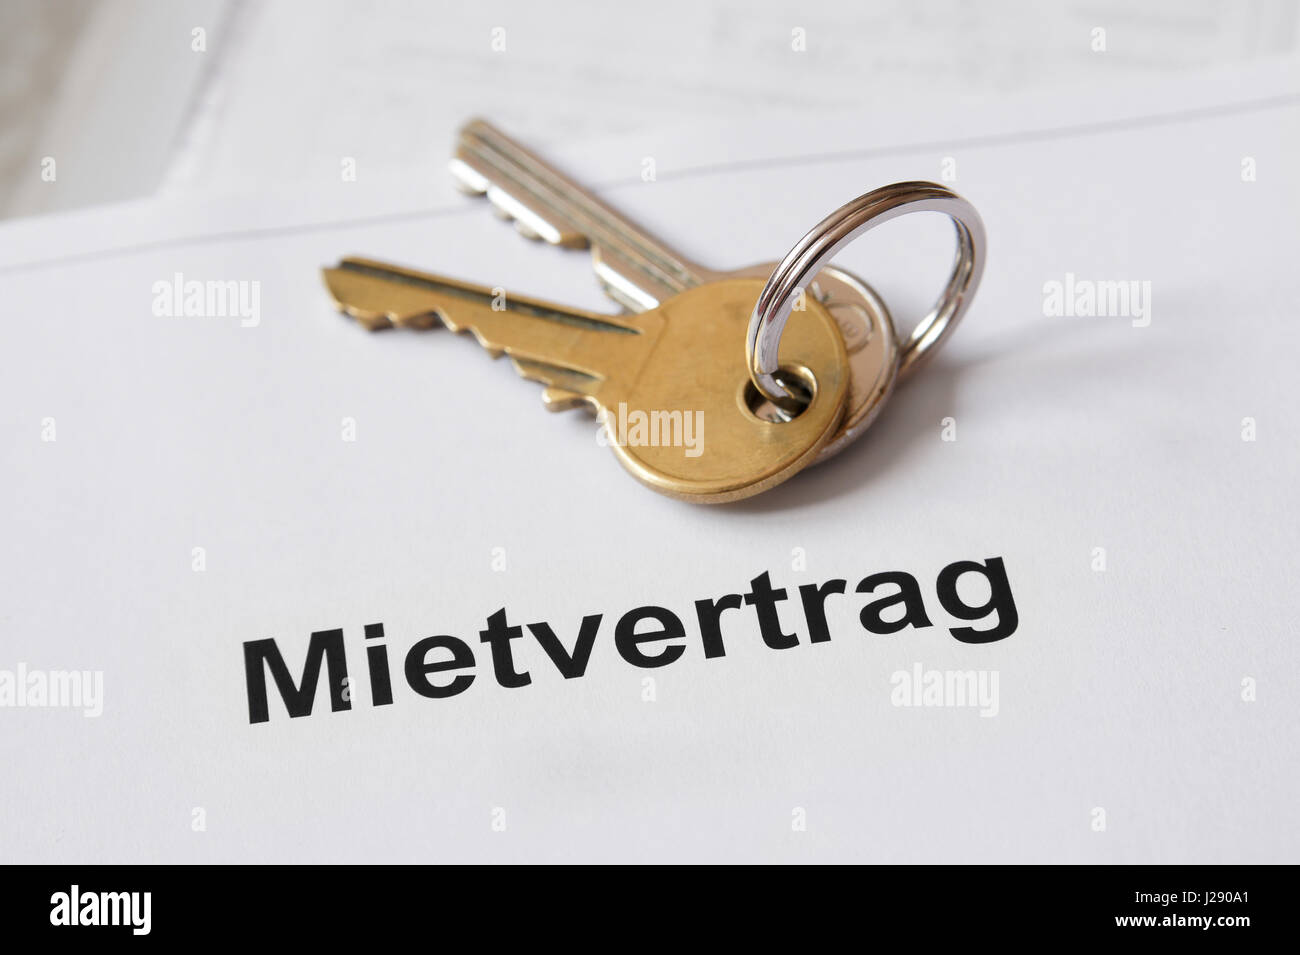 Mietvertrag German lease agreement - Stock Image